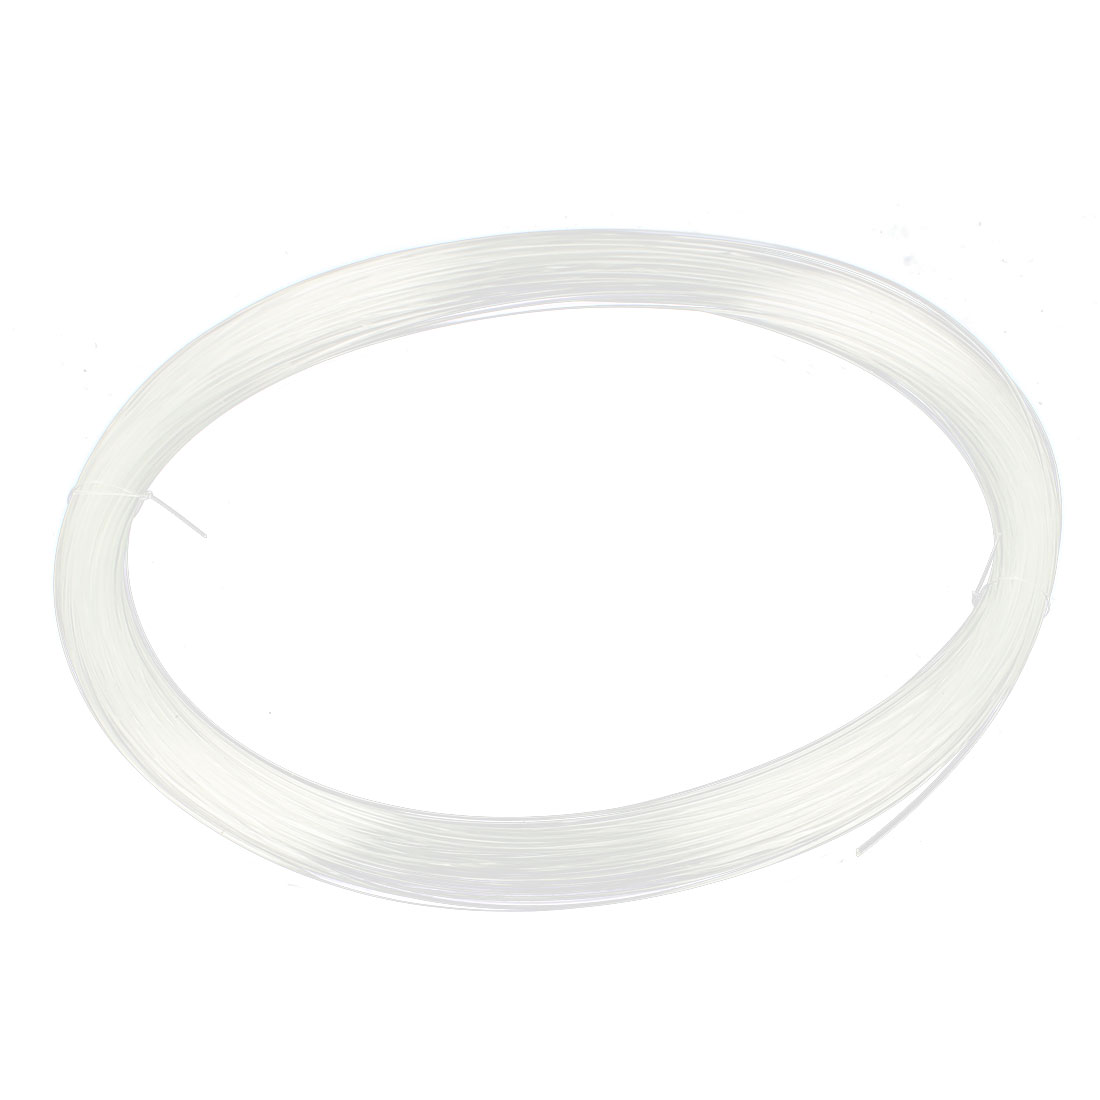 25kg 0.7mm Dia Clear Nylon String Pool Sea Fishing Line Spool 33M 110ft Long